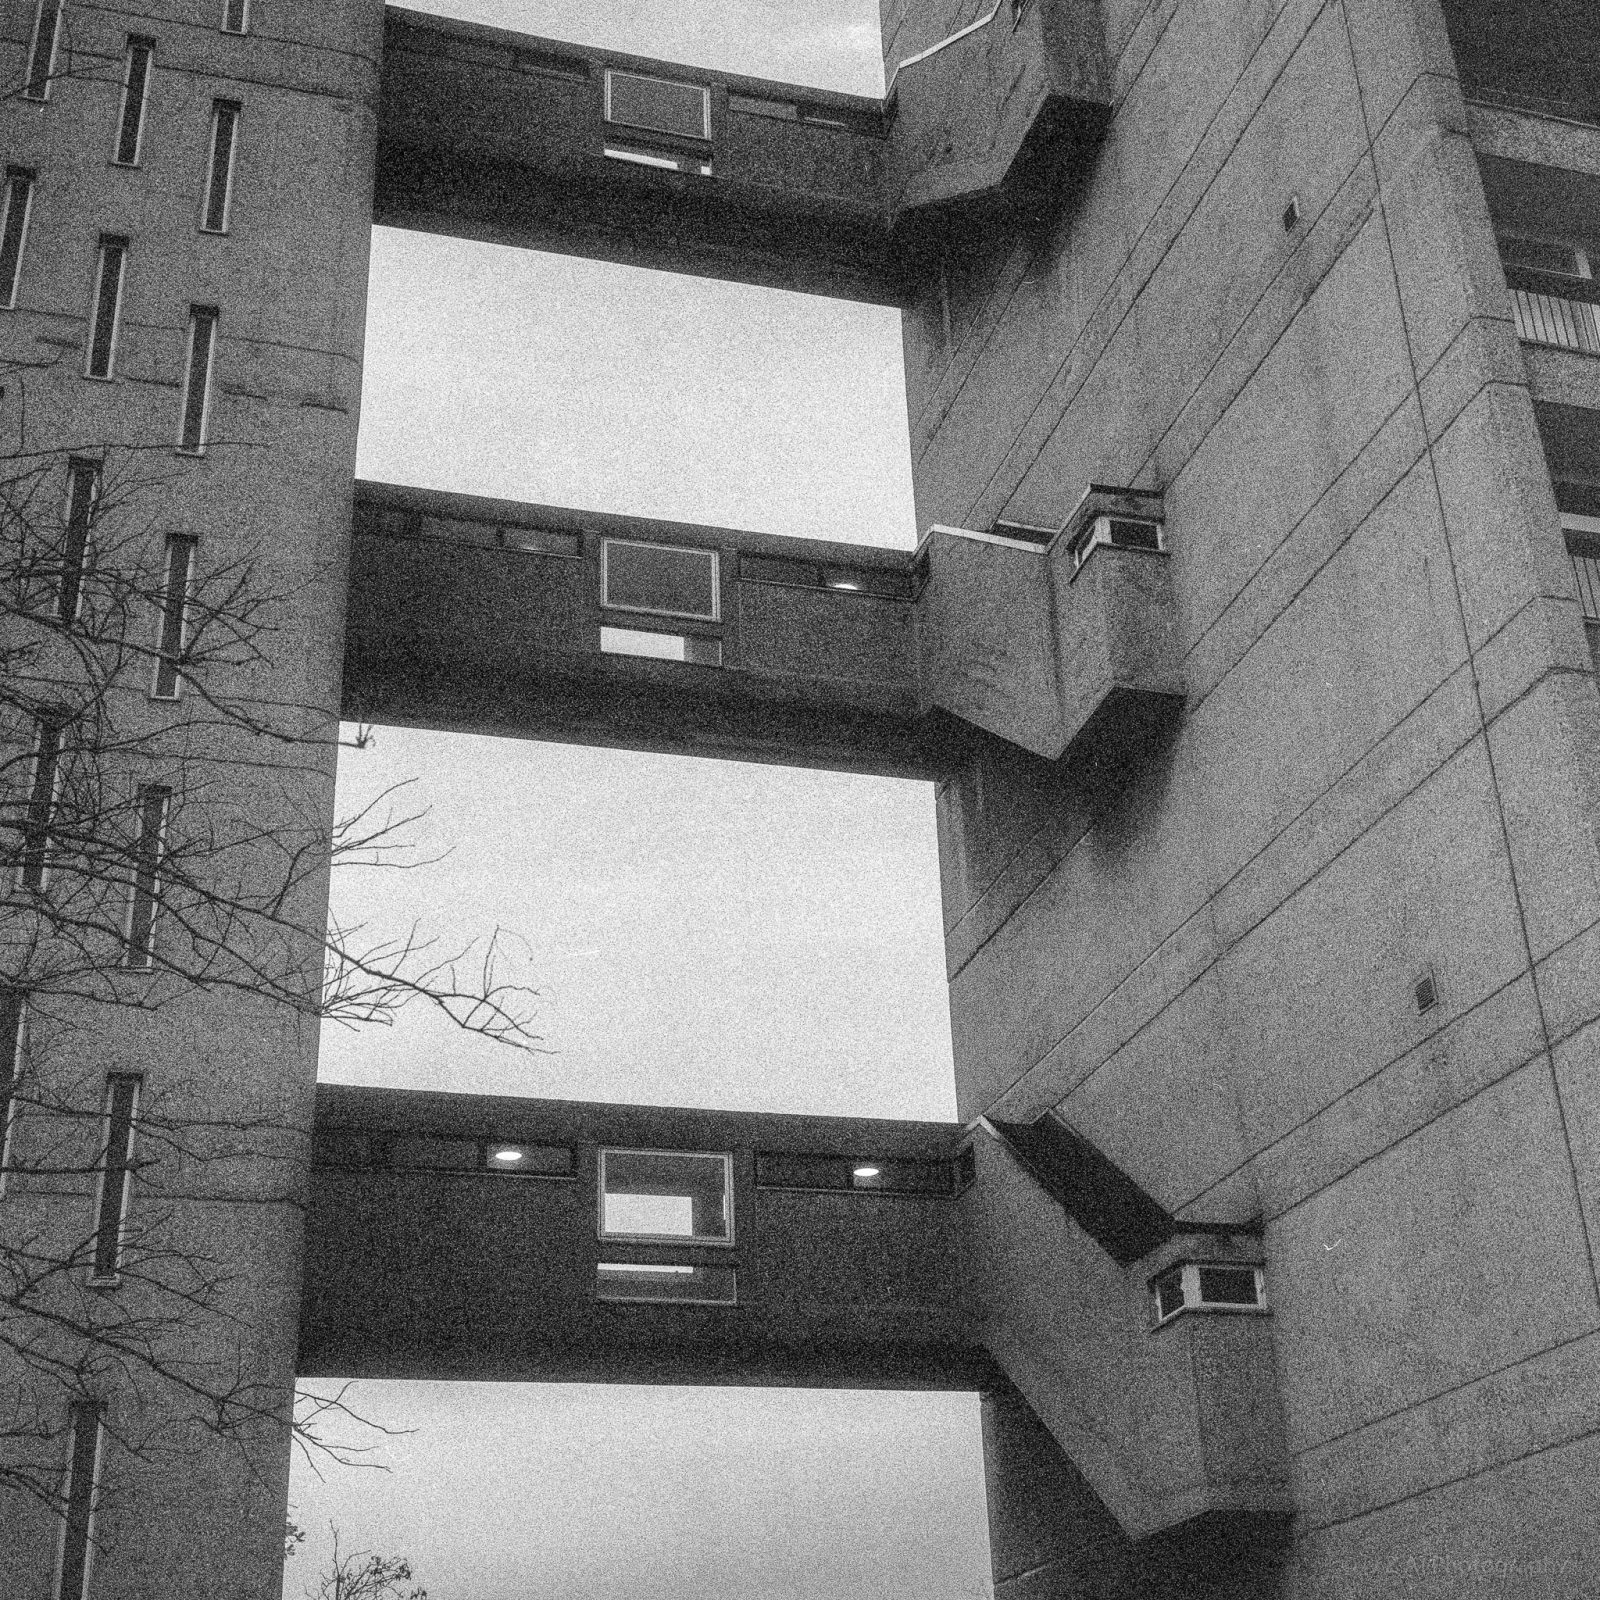 Balfron Tower